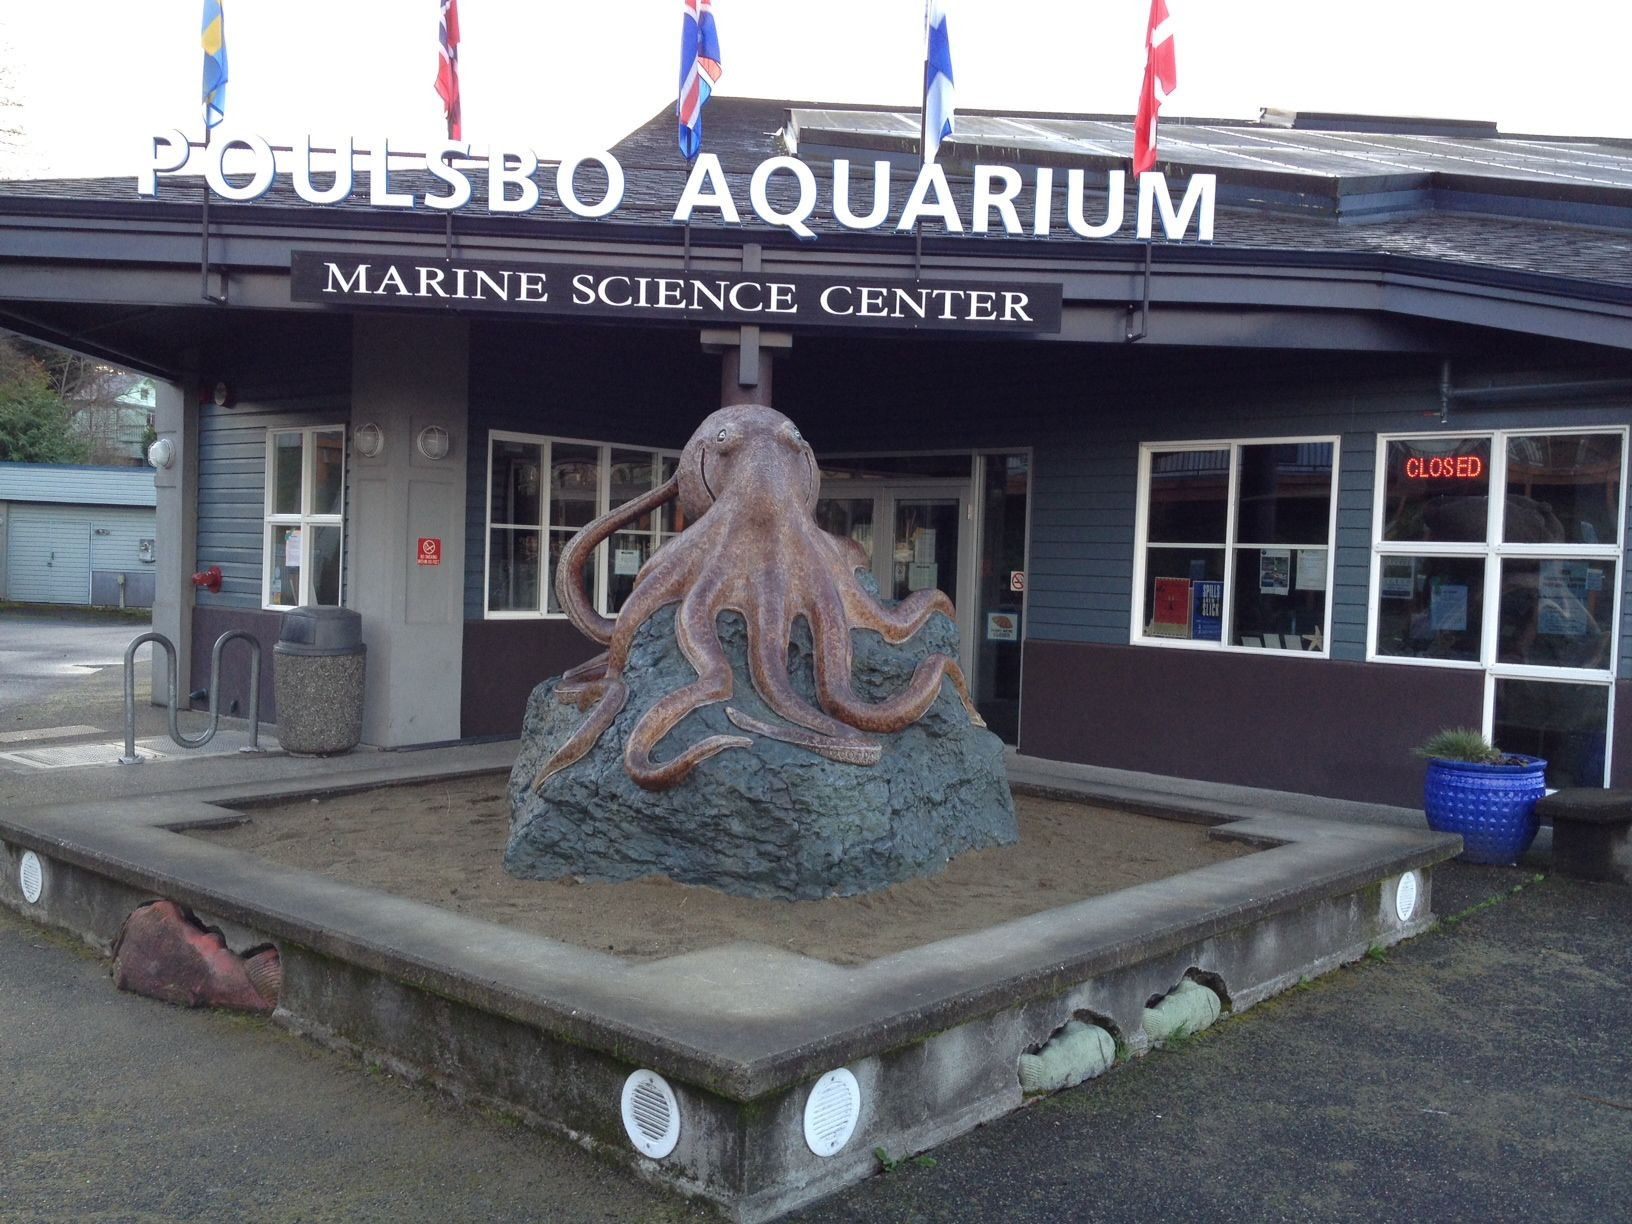 Poulsbo Marine Science Center Octopus sculpture Awesome